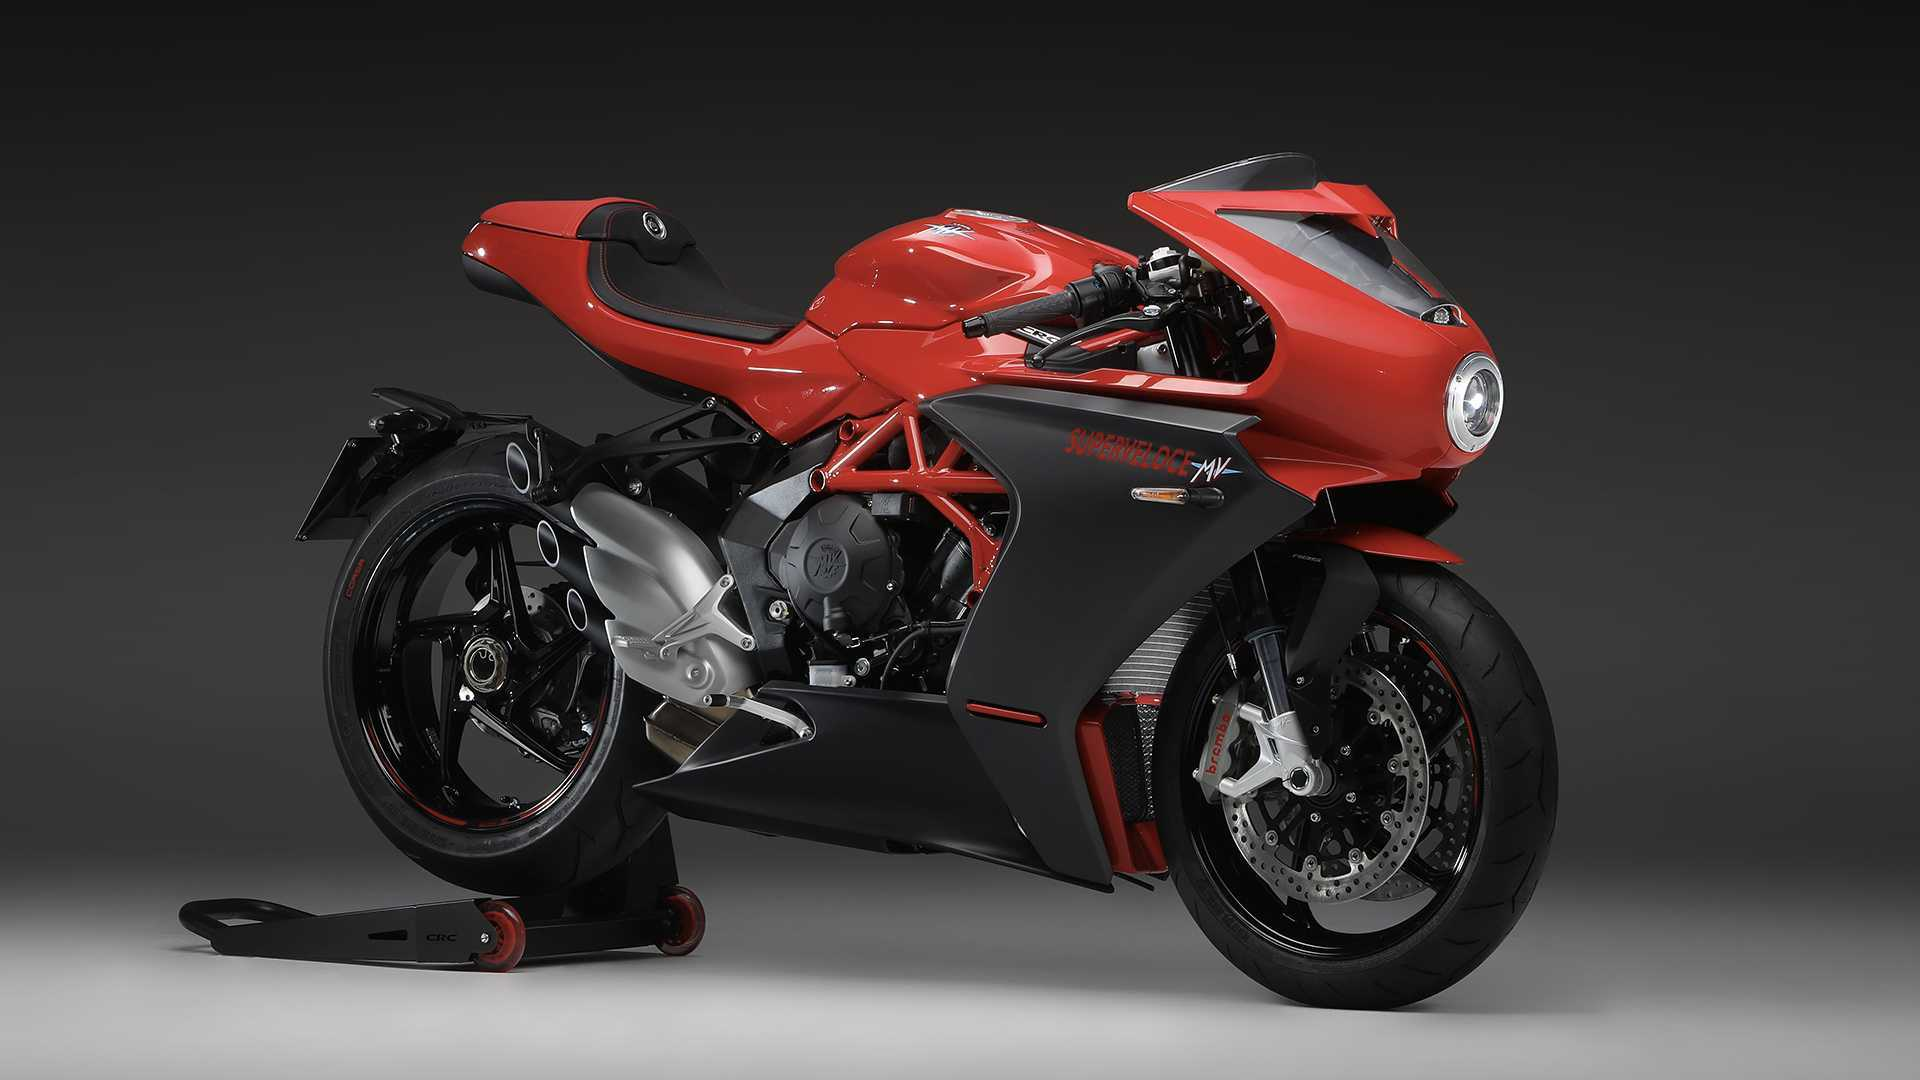 MV Agusta And Akrapovič Strike Up An Exhaustive Partnership